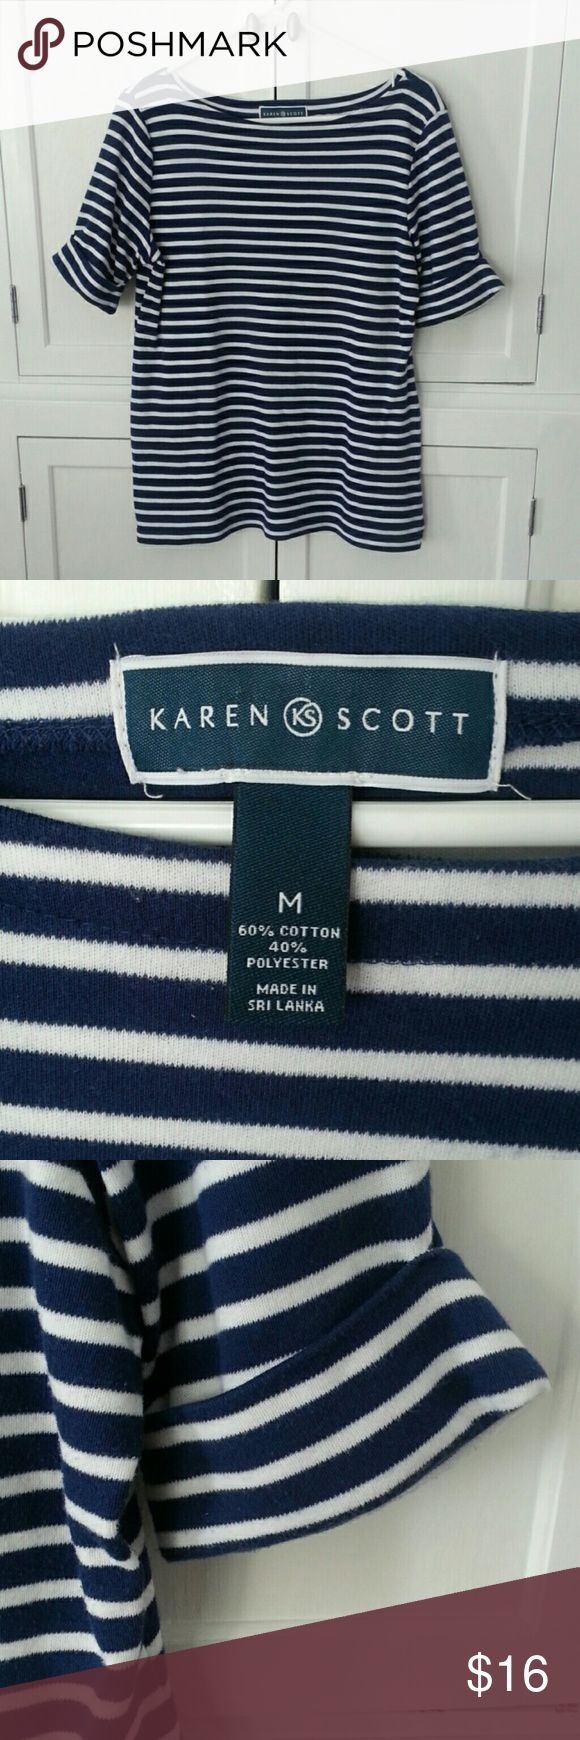 "KAREN SCOTT navy/white NAUTICAL top Navy & white stripe. Cuffed sleeves. Small side slits. Cotton/poly blend. 19"" pit to pit 25"" shoulder to hem.  VERY NAUTICAL!  GREAT CONDITION! Karen Scott Tops Tees - Short Sleeve"